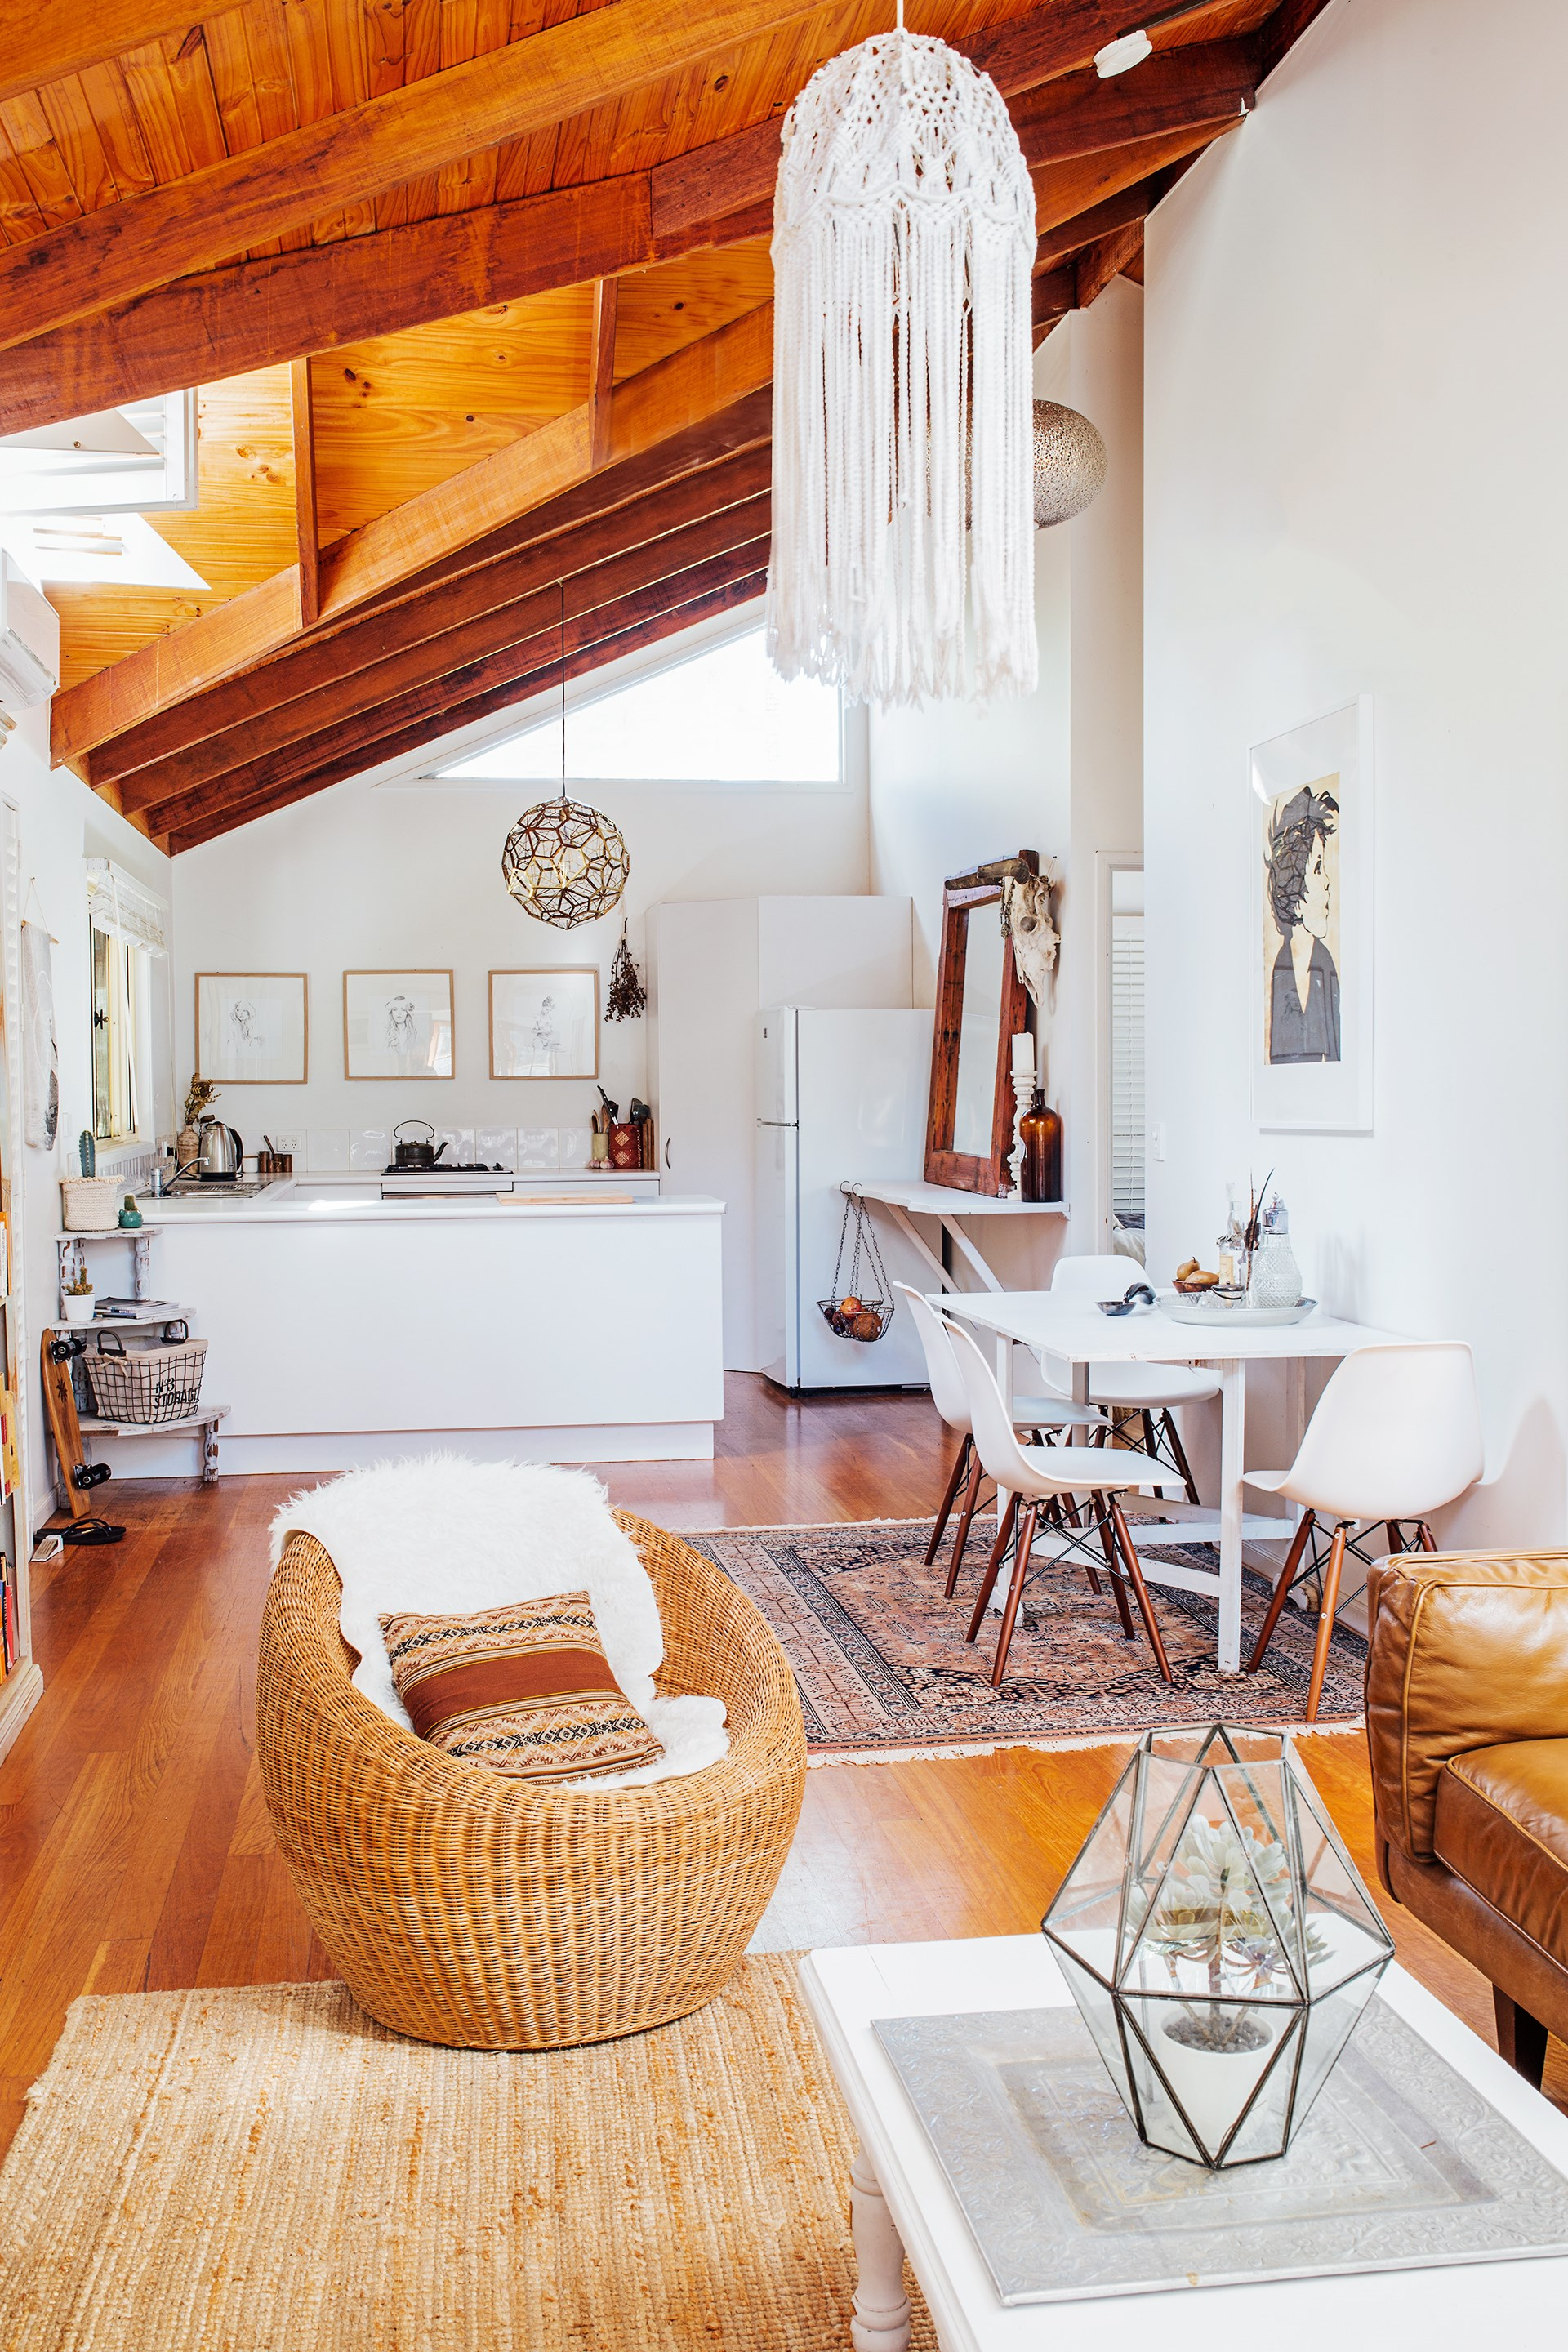 """Relaxed boho styling shines through in this jewellery designer's Byron Bay home. See more of this [treasure-filled weatherboard](http://www.homestolove.com.au/gallery-chris-and-celestes-treasure-filled-house-2266